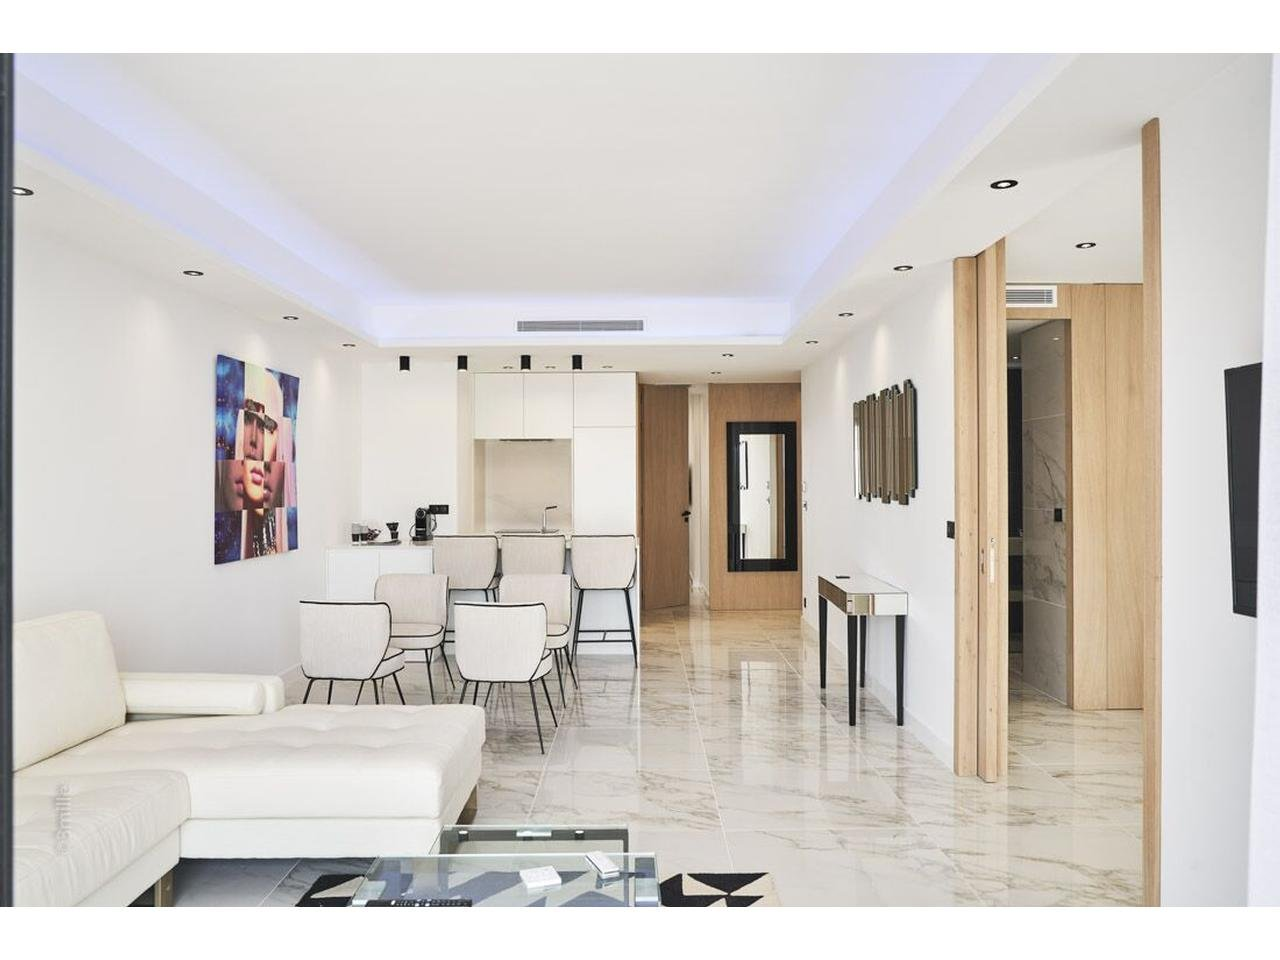 Appartement  4 Rooms 92m2  for sale  2 990 000 €